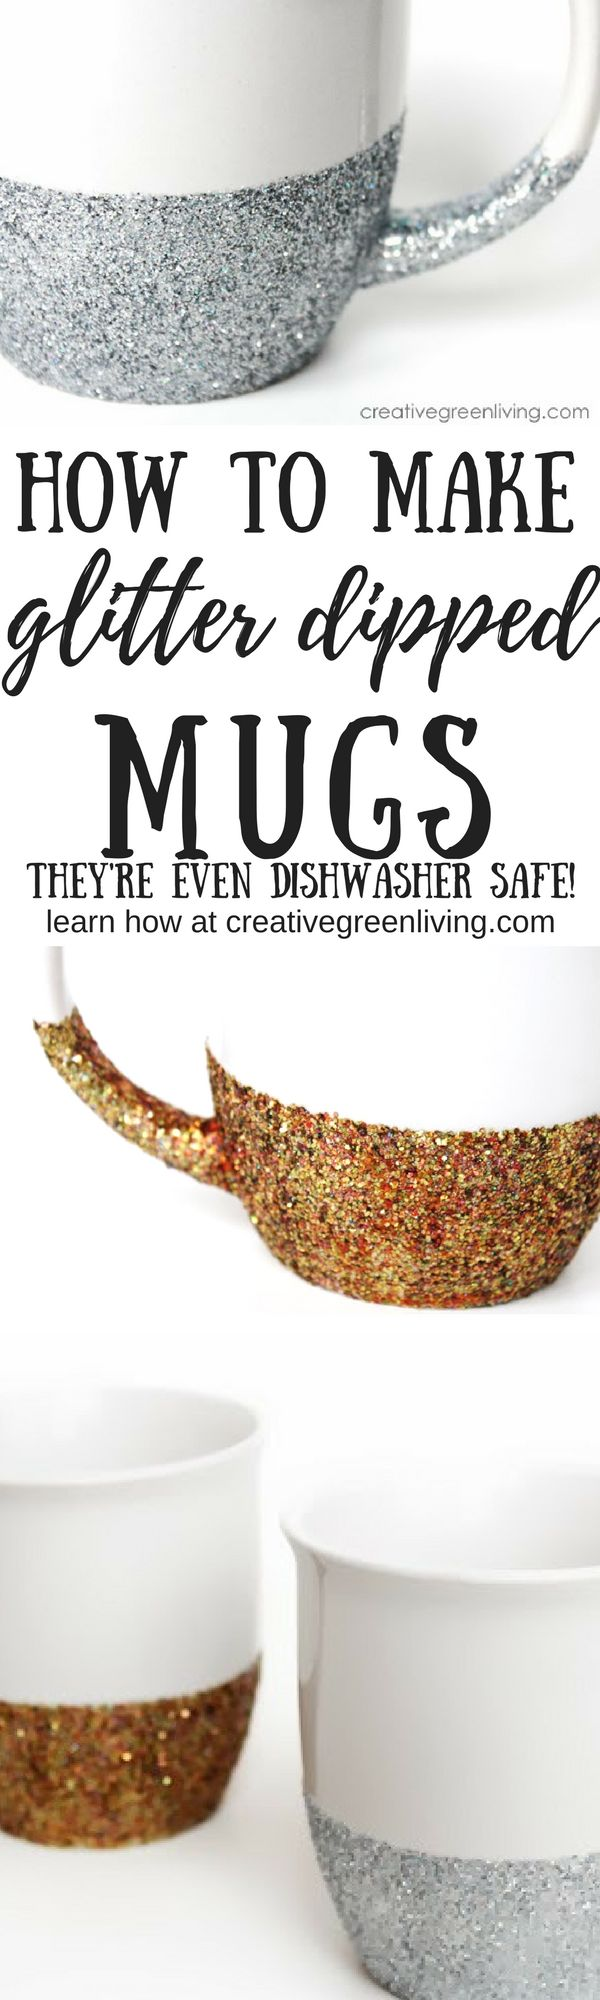 How to make dishwasher safe glitter dipped mugs. These are so pretty and easy to make. It's the perfect mug craft to get some sparkle! #coffeecups